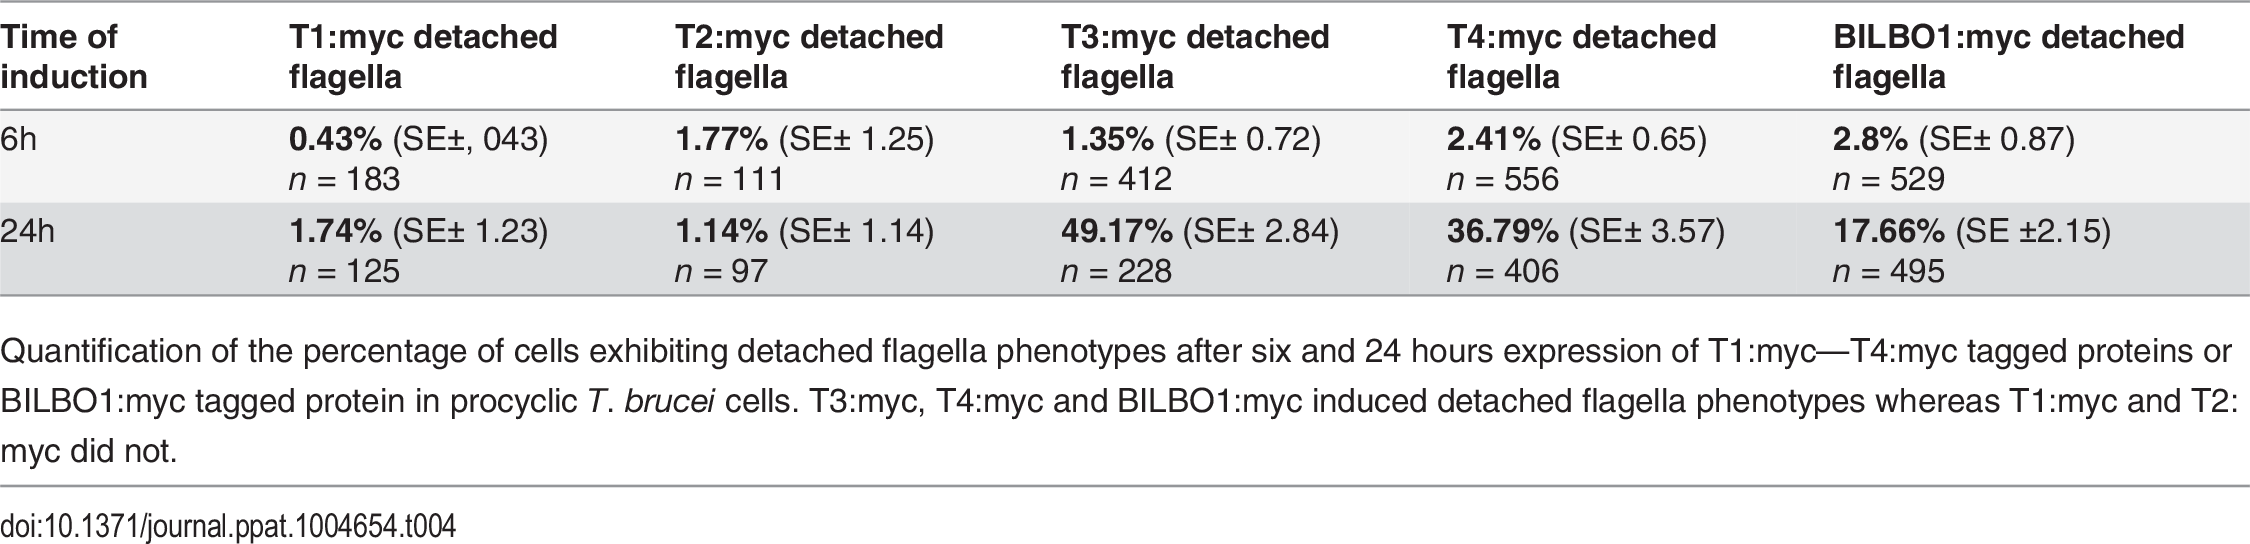 T1:myc—T4:myc and BILBO1:myc detached flagellum phenotypes after expression <i>T. brucei</i> cells.